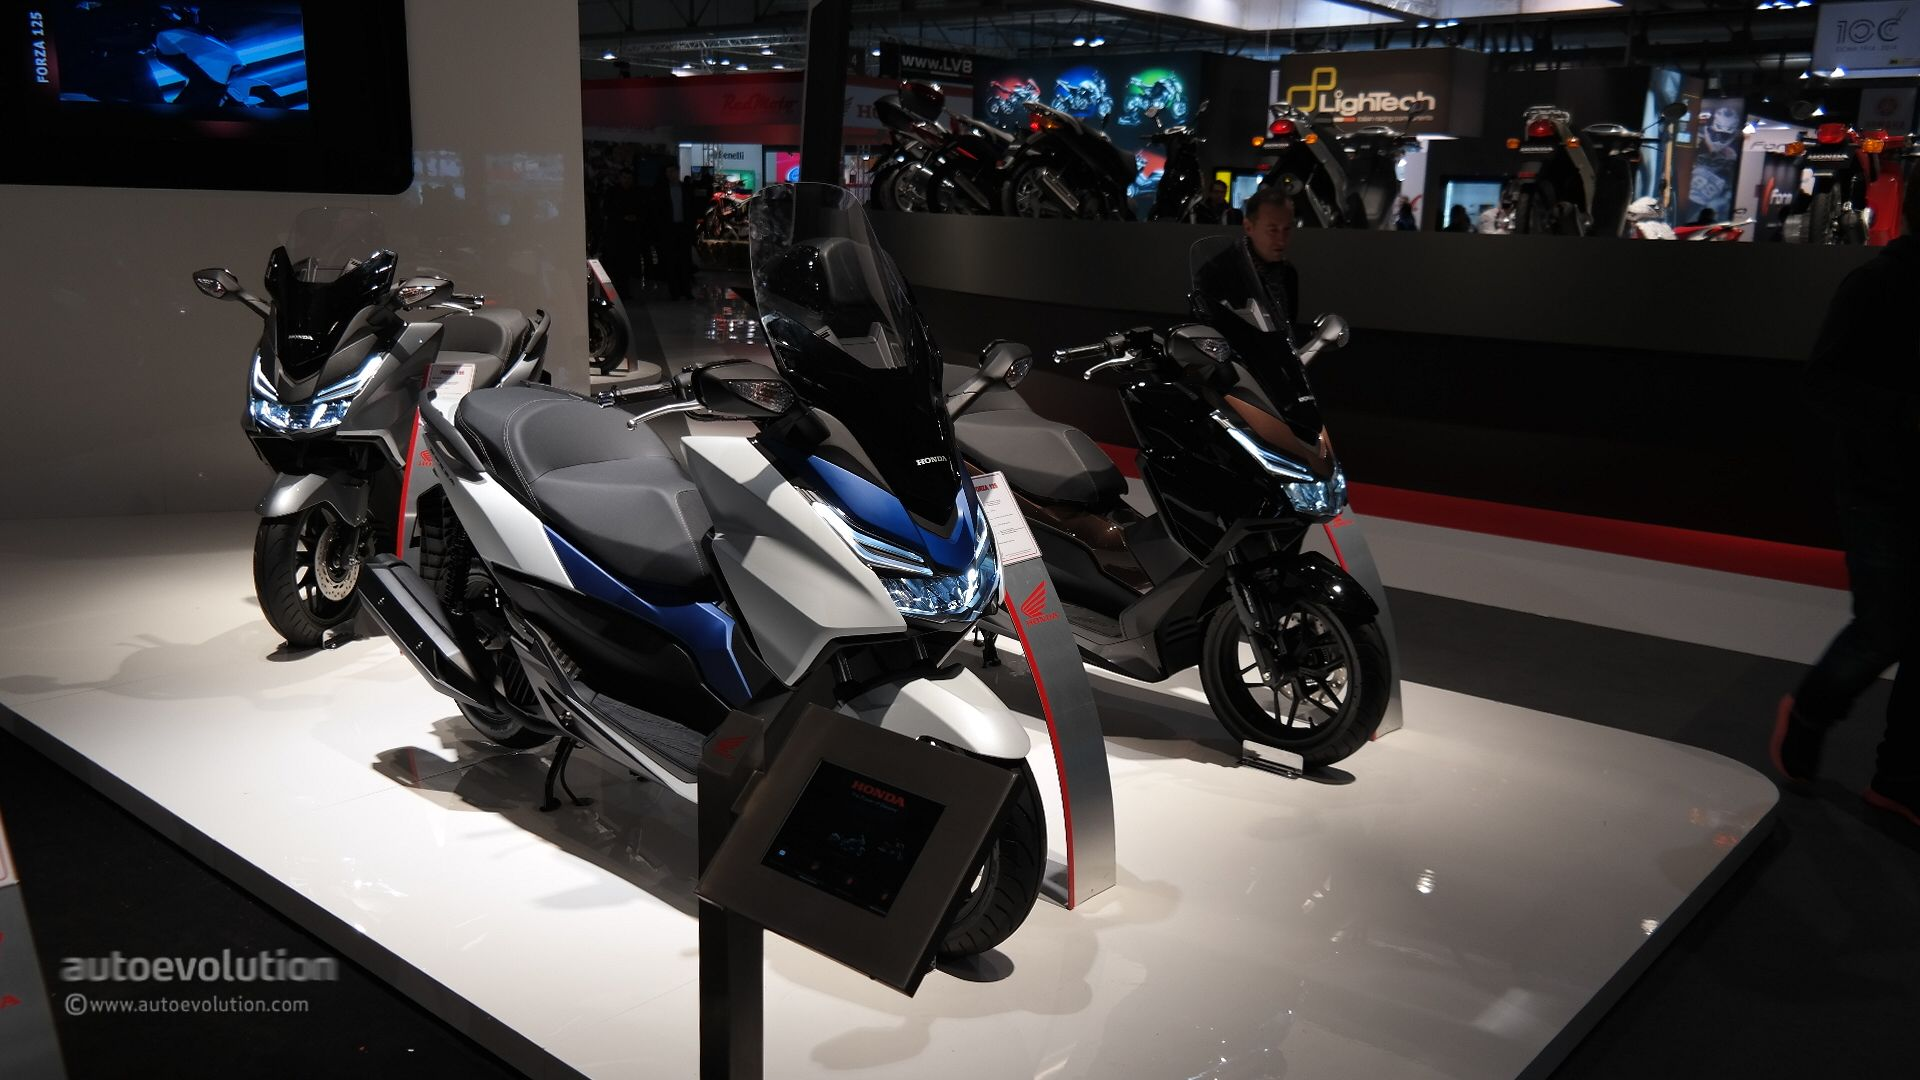 2015 Honda Forza 125 Shows Fresh LED Lights at EICMA 2014 ...